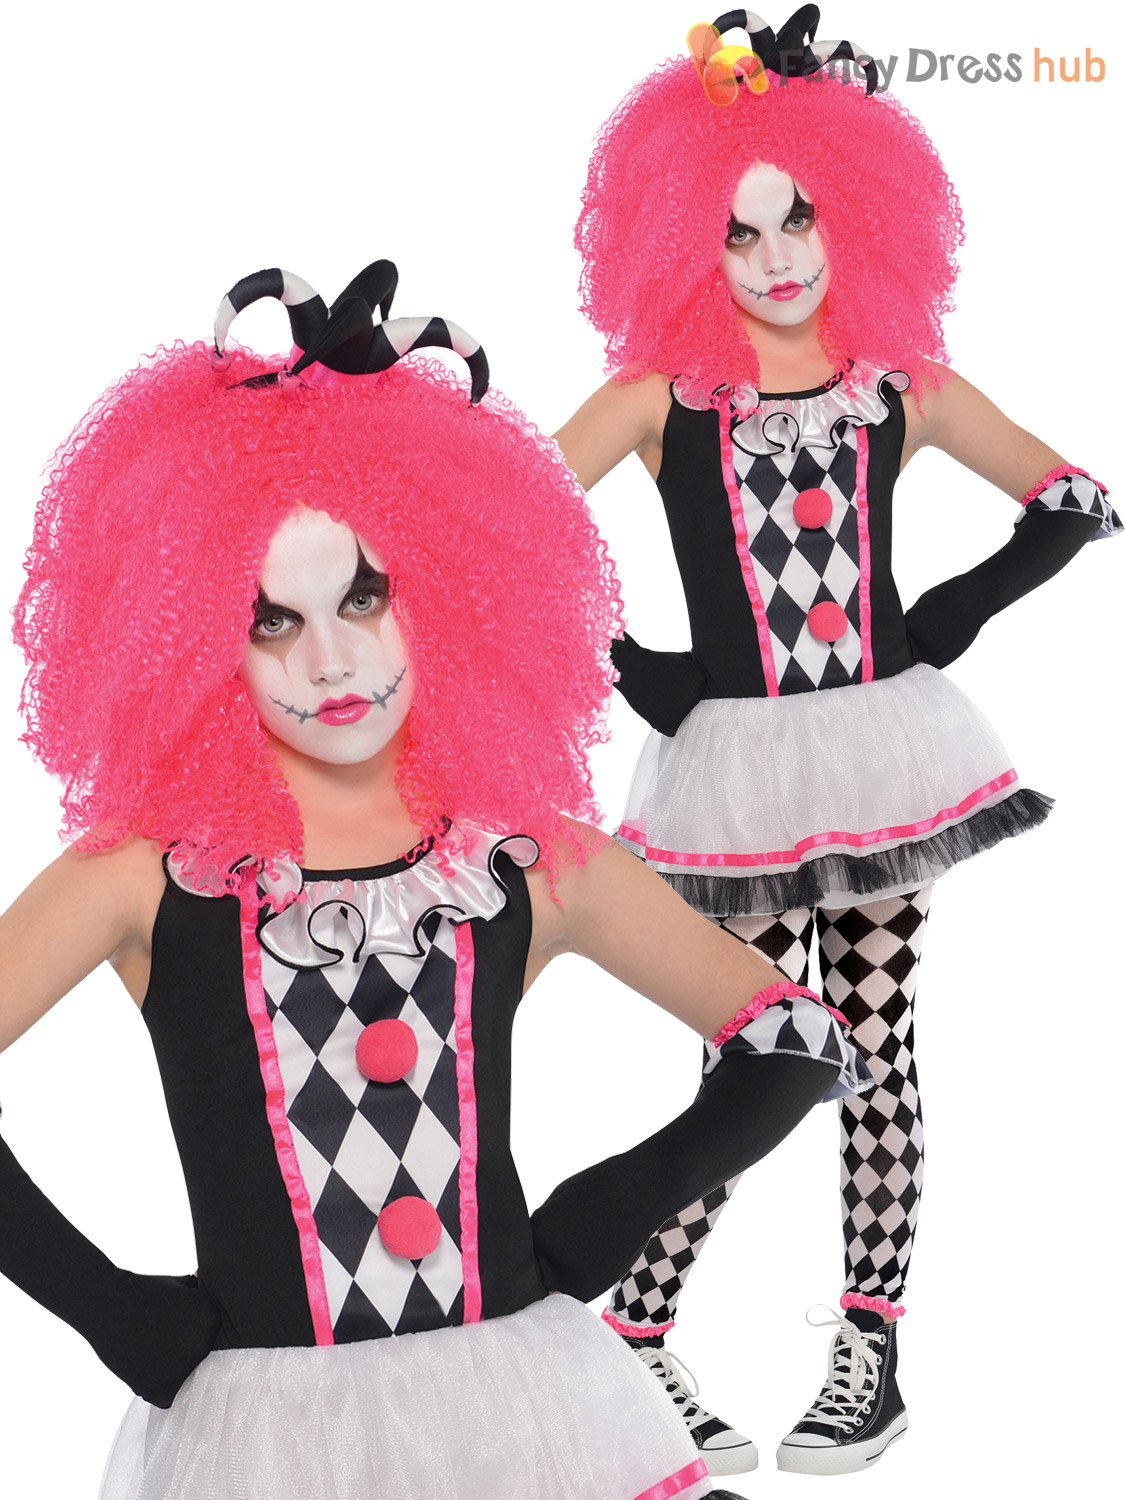 ... Picture 2 of 4; Picture 3 ...  sc 1 st  eBay & Girls Circus Sweetie Clown Harlequin Honey Jester Halloween Fancy ...